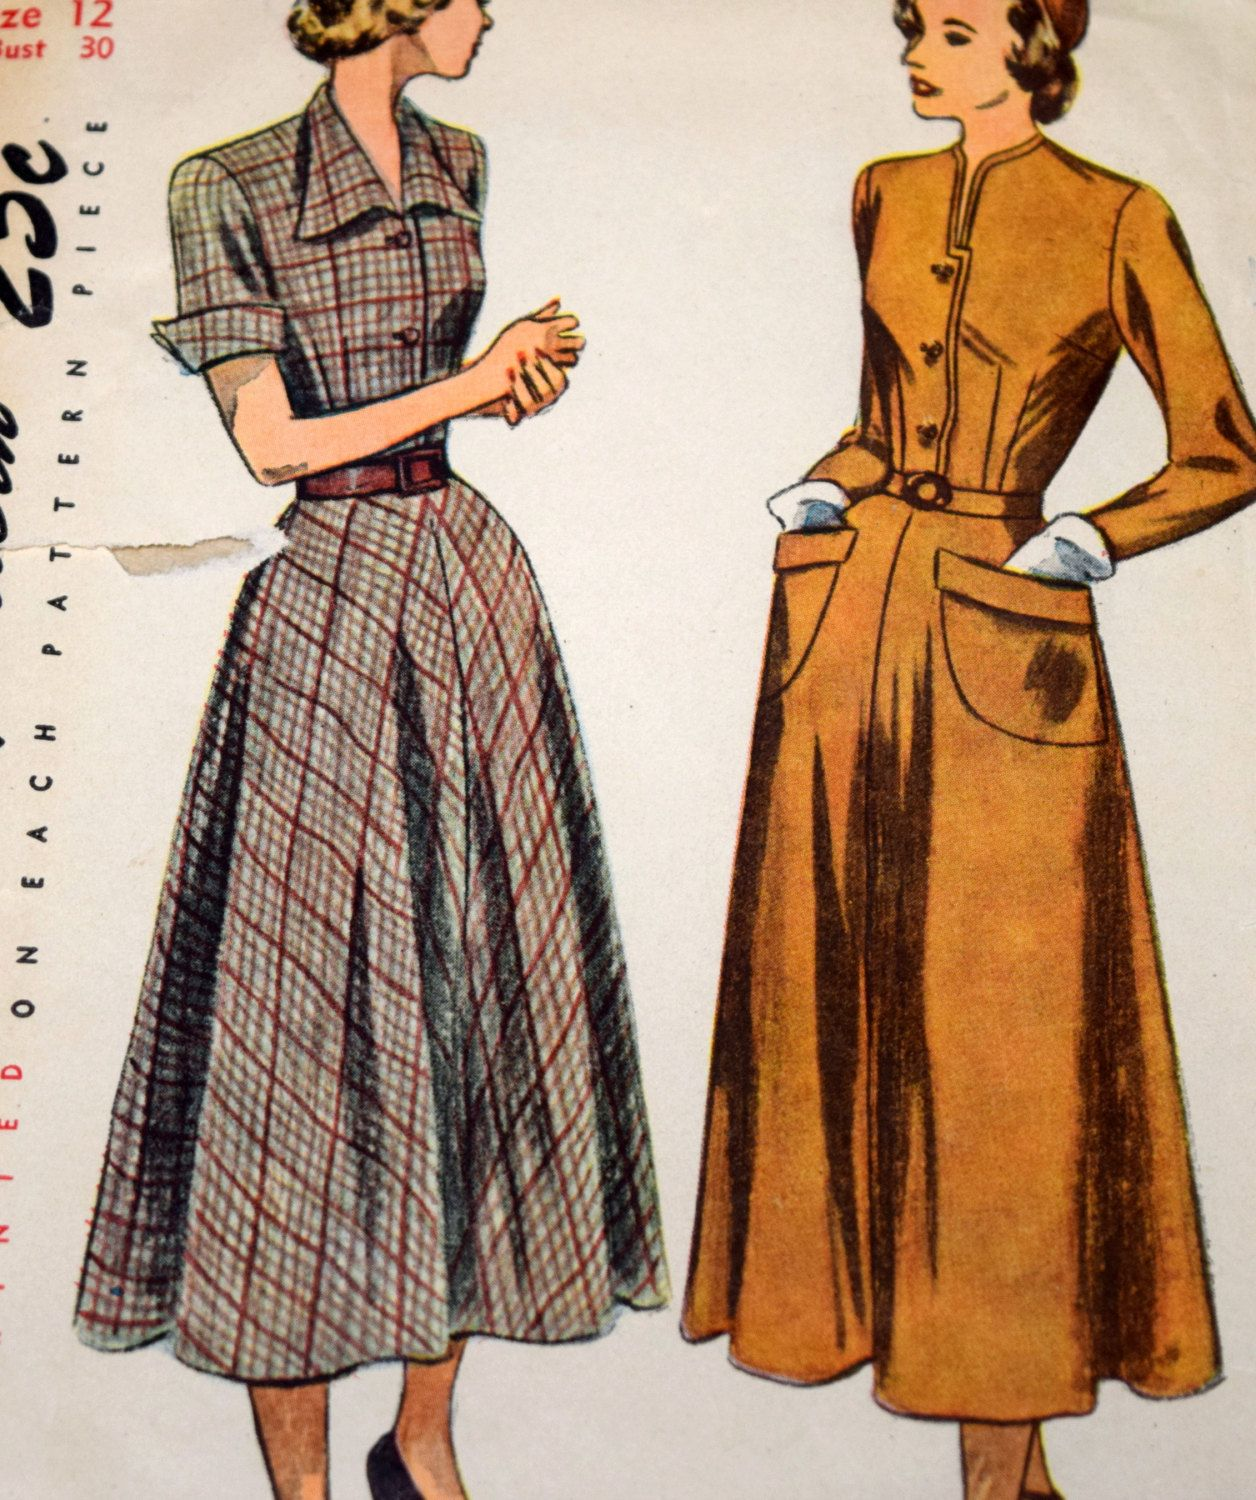 Vintage 1940s Dress Sewing Pattern, Simplicity 2617, Size 12 Bust 30 ...